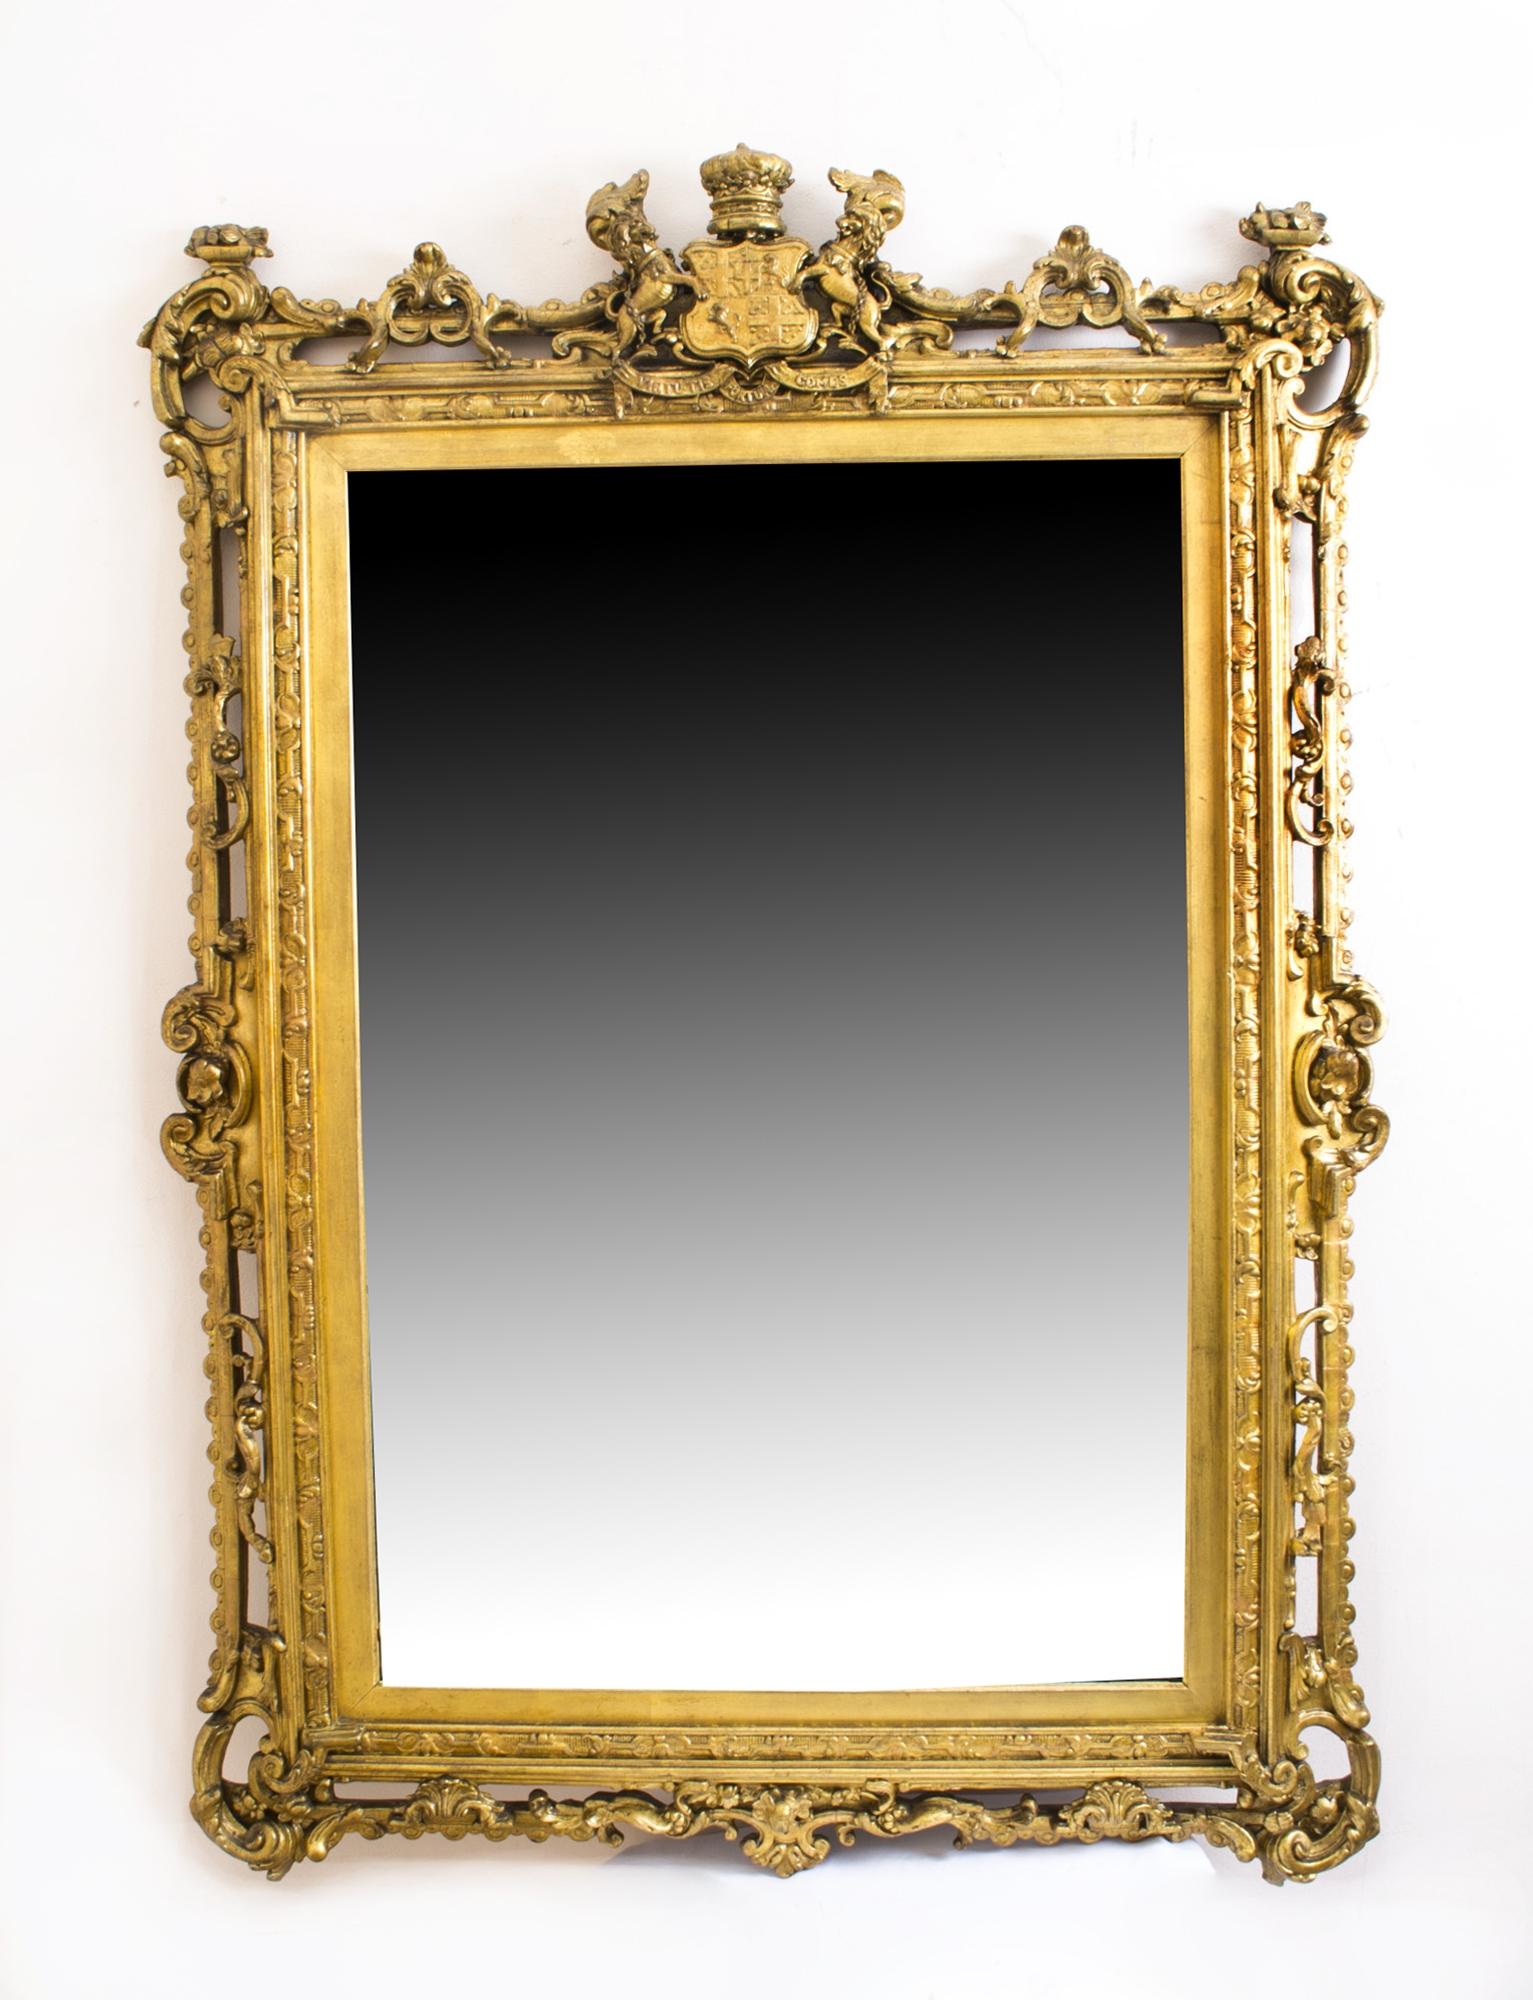 Antique Gilded Mirror With Arms Of The Duke Of Wellington C1850 Inside Antique Gilded Mirror (Image 6 of 15)